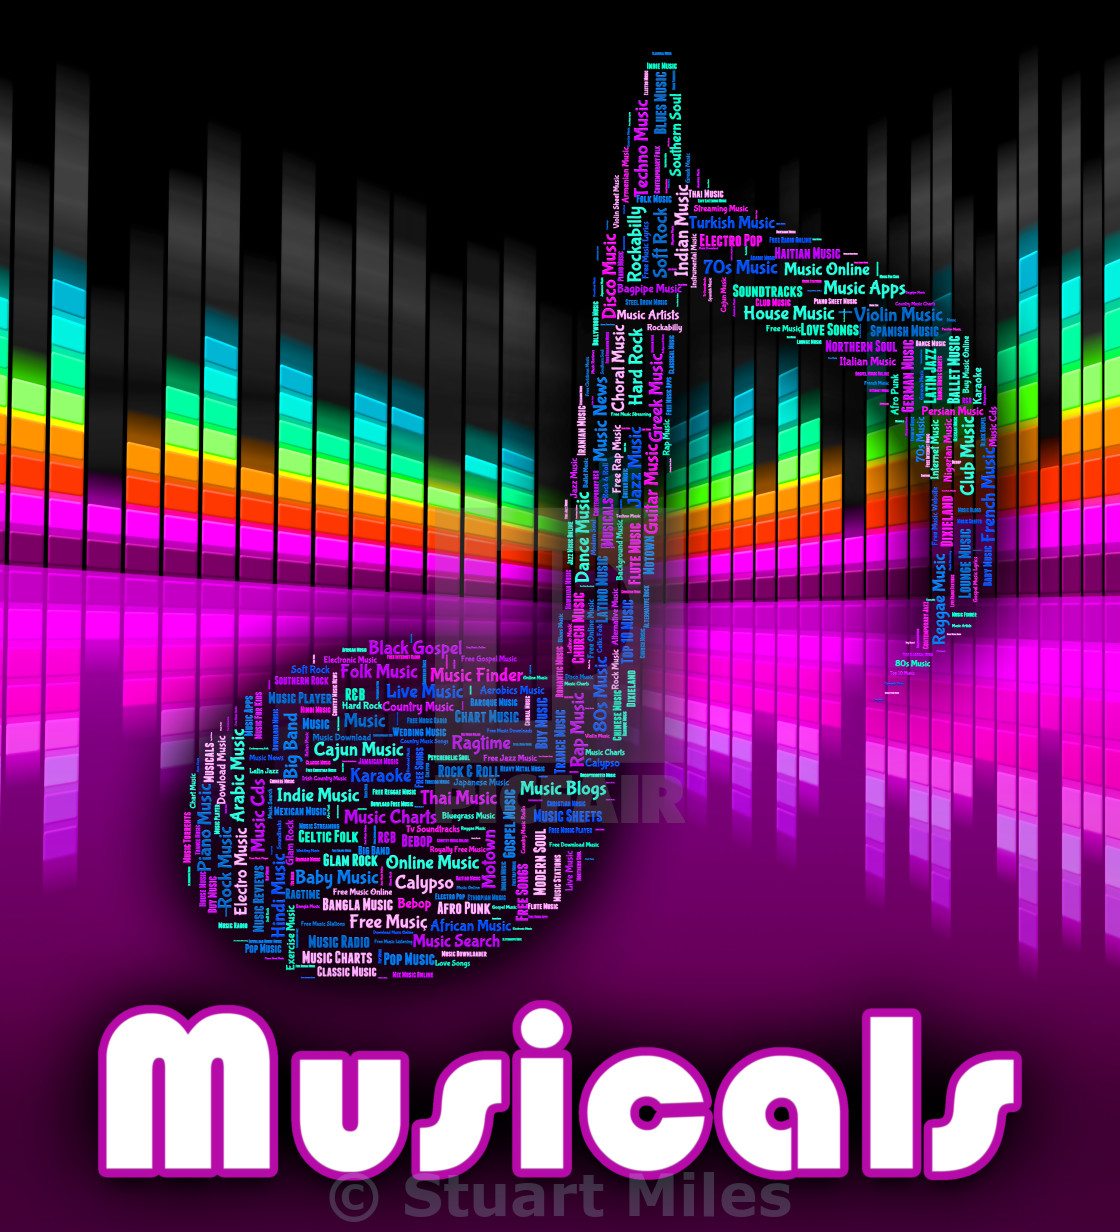 Musicals Music Shows Sound Track And Audio - License